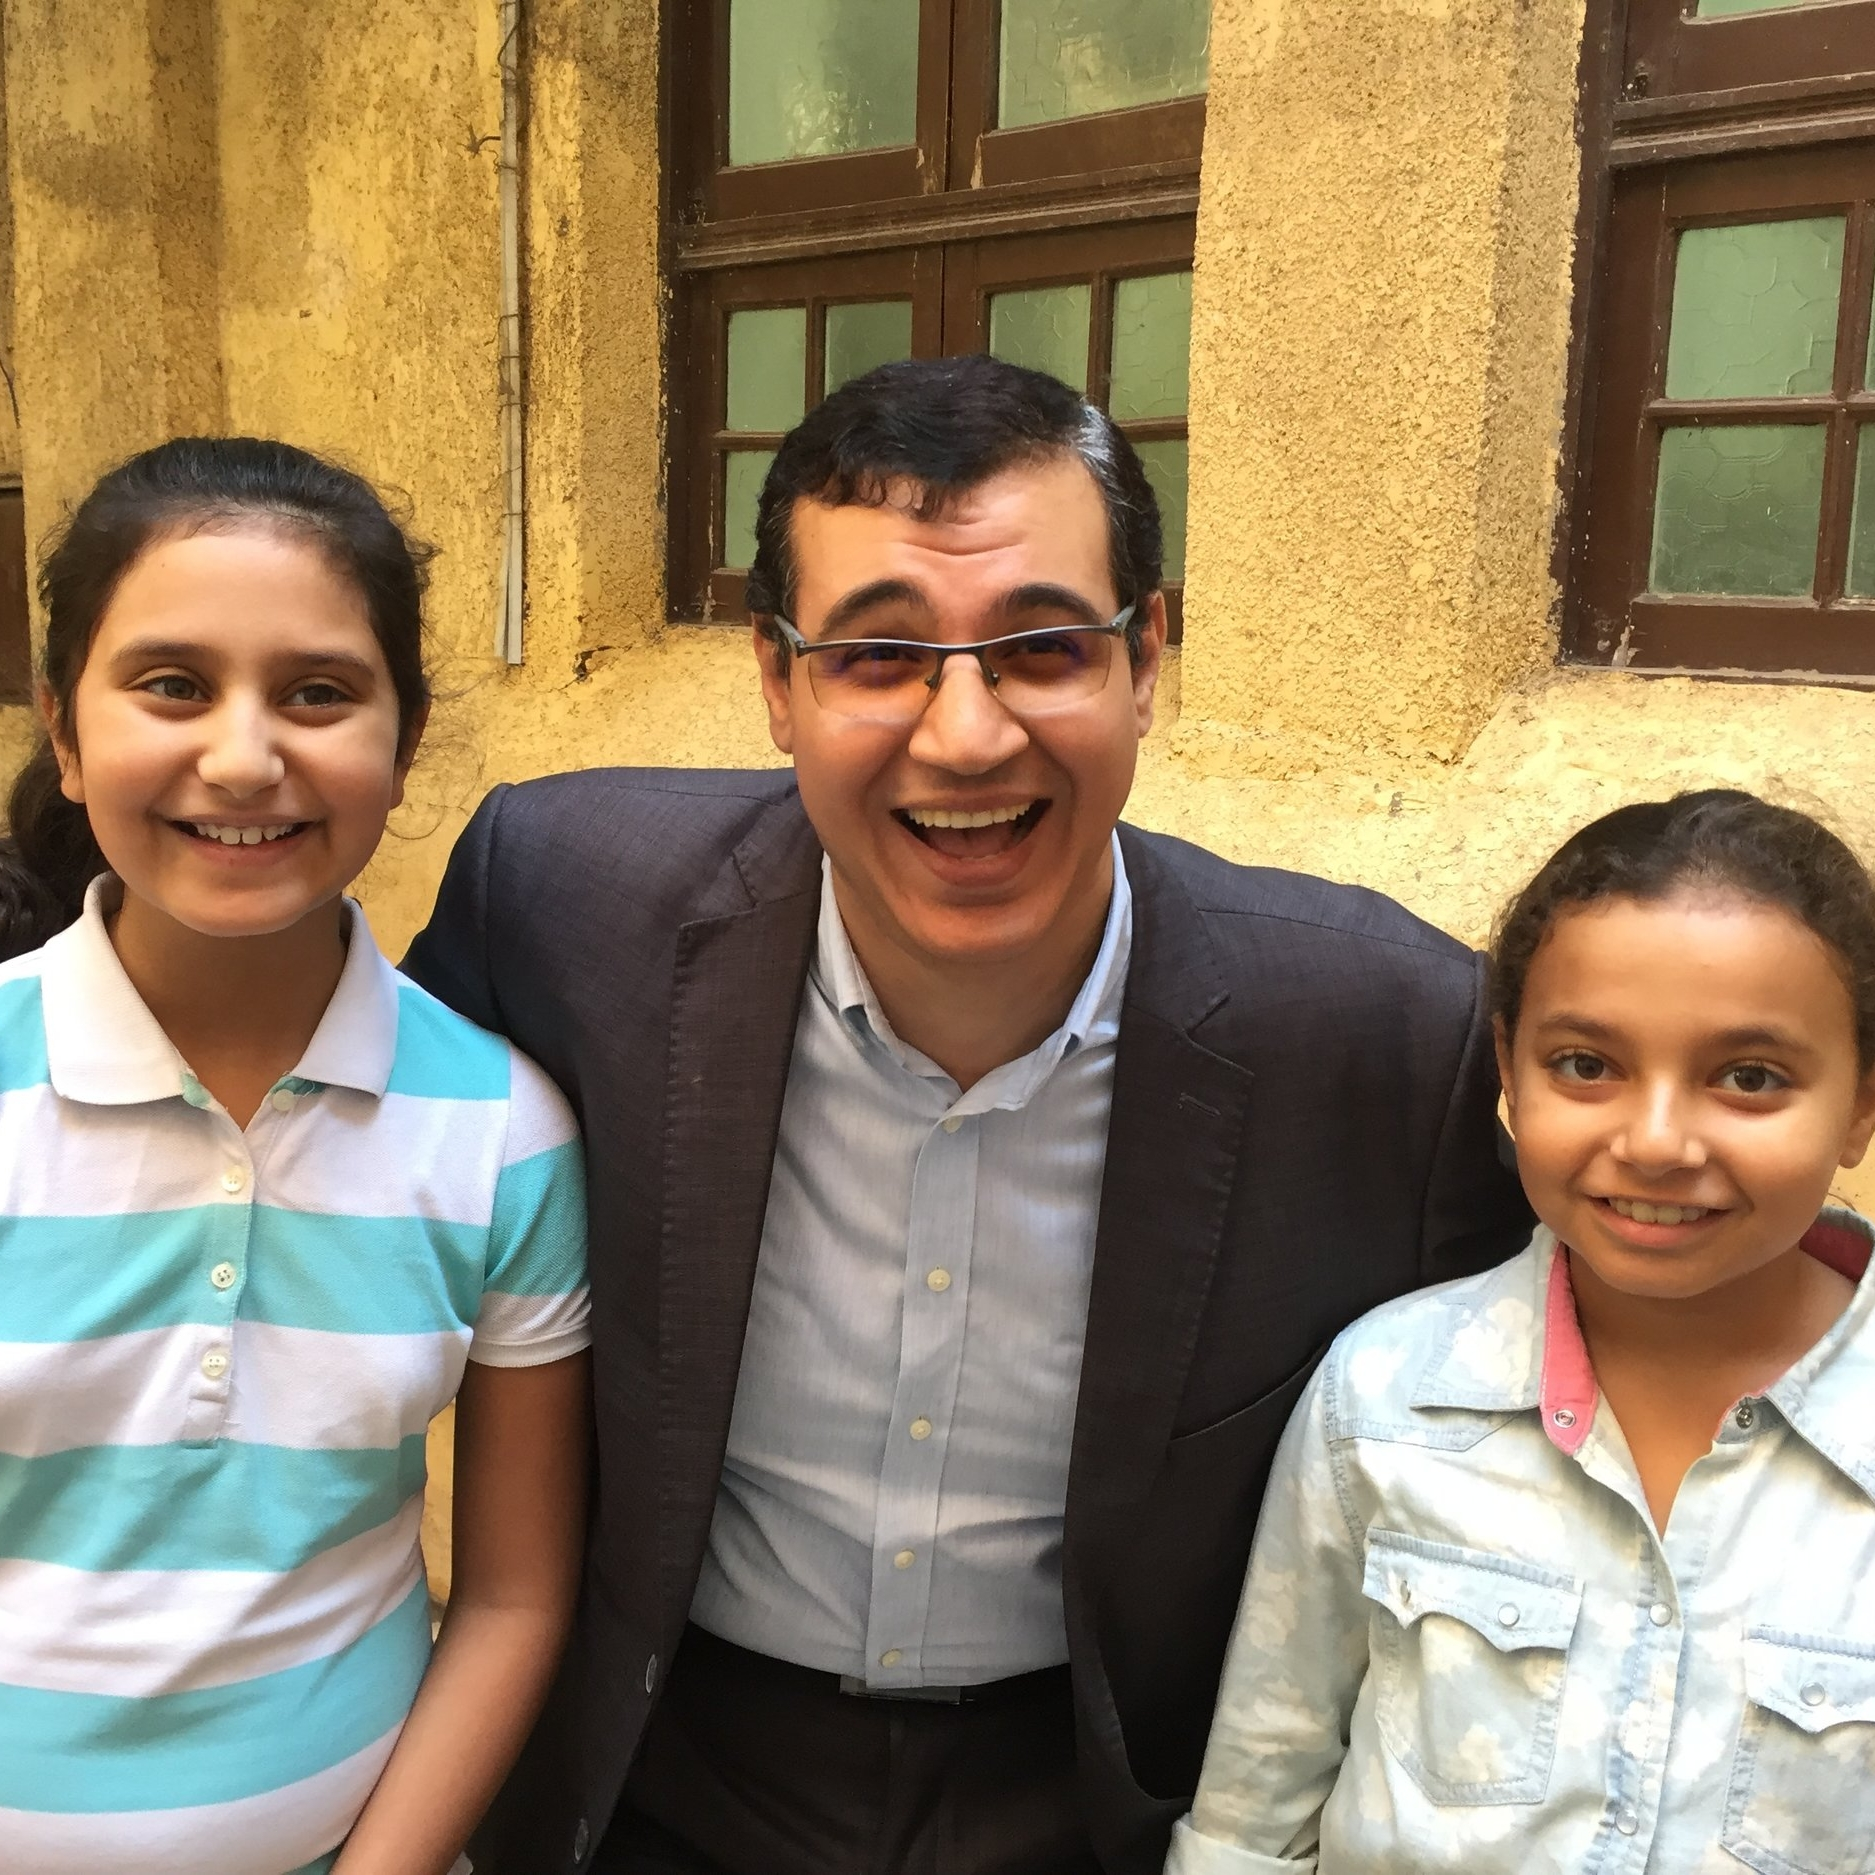 Rev. Wael with Ferah and Lily